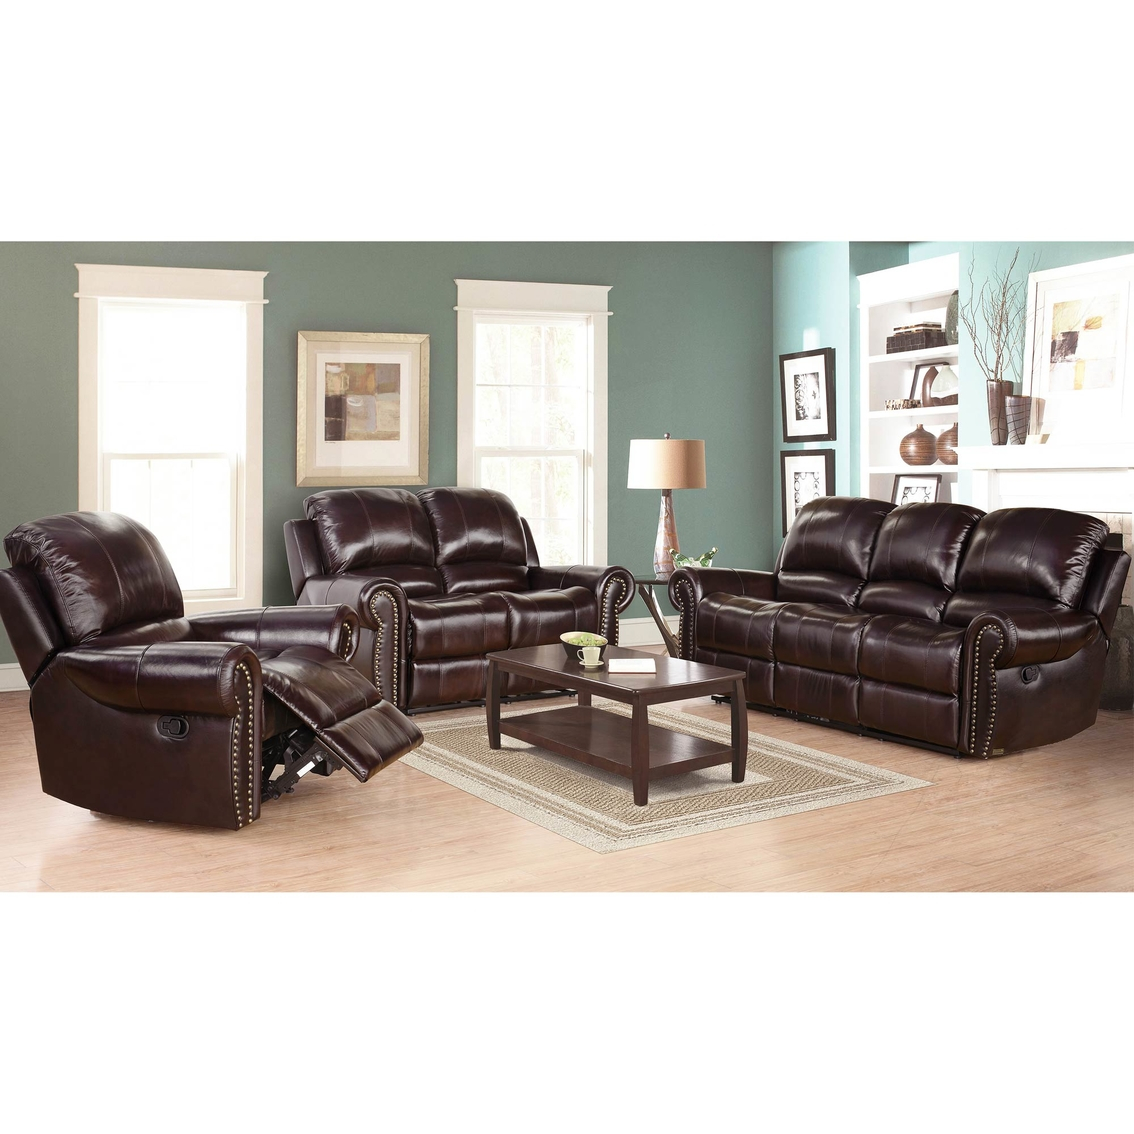 Abson Living Broadway Reclining 3 Pc Set Sofas for proportions 1134 X 1134